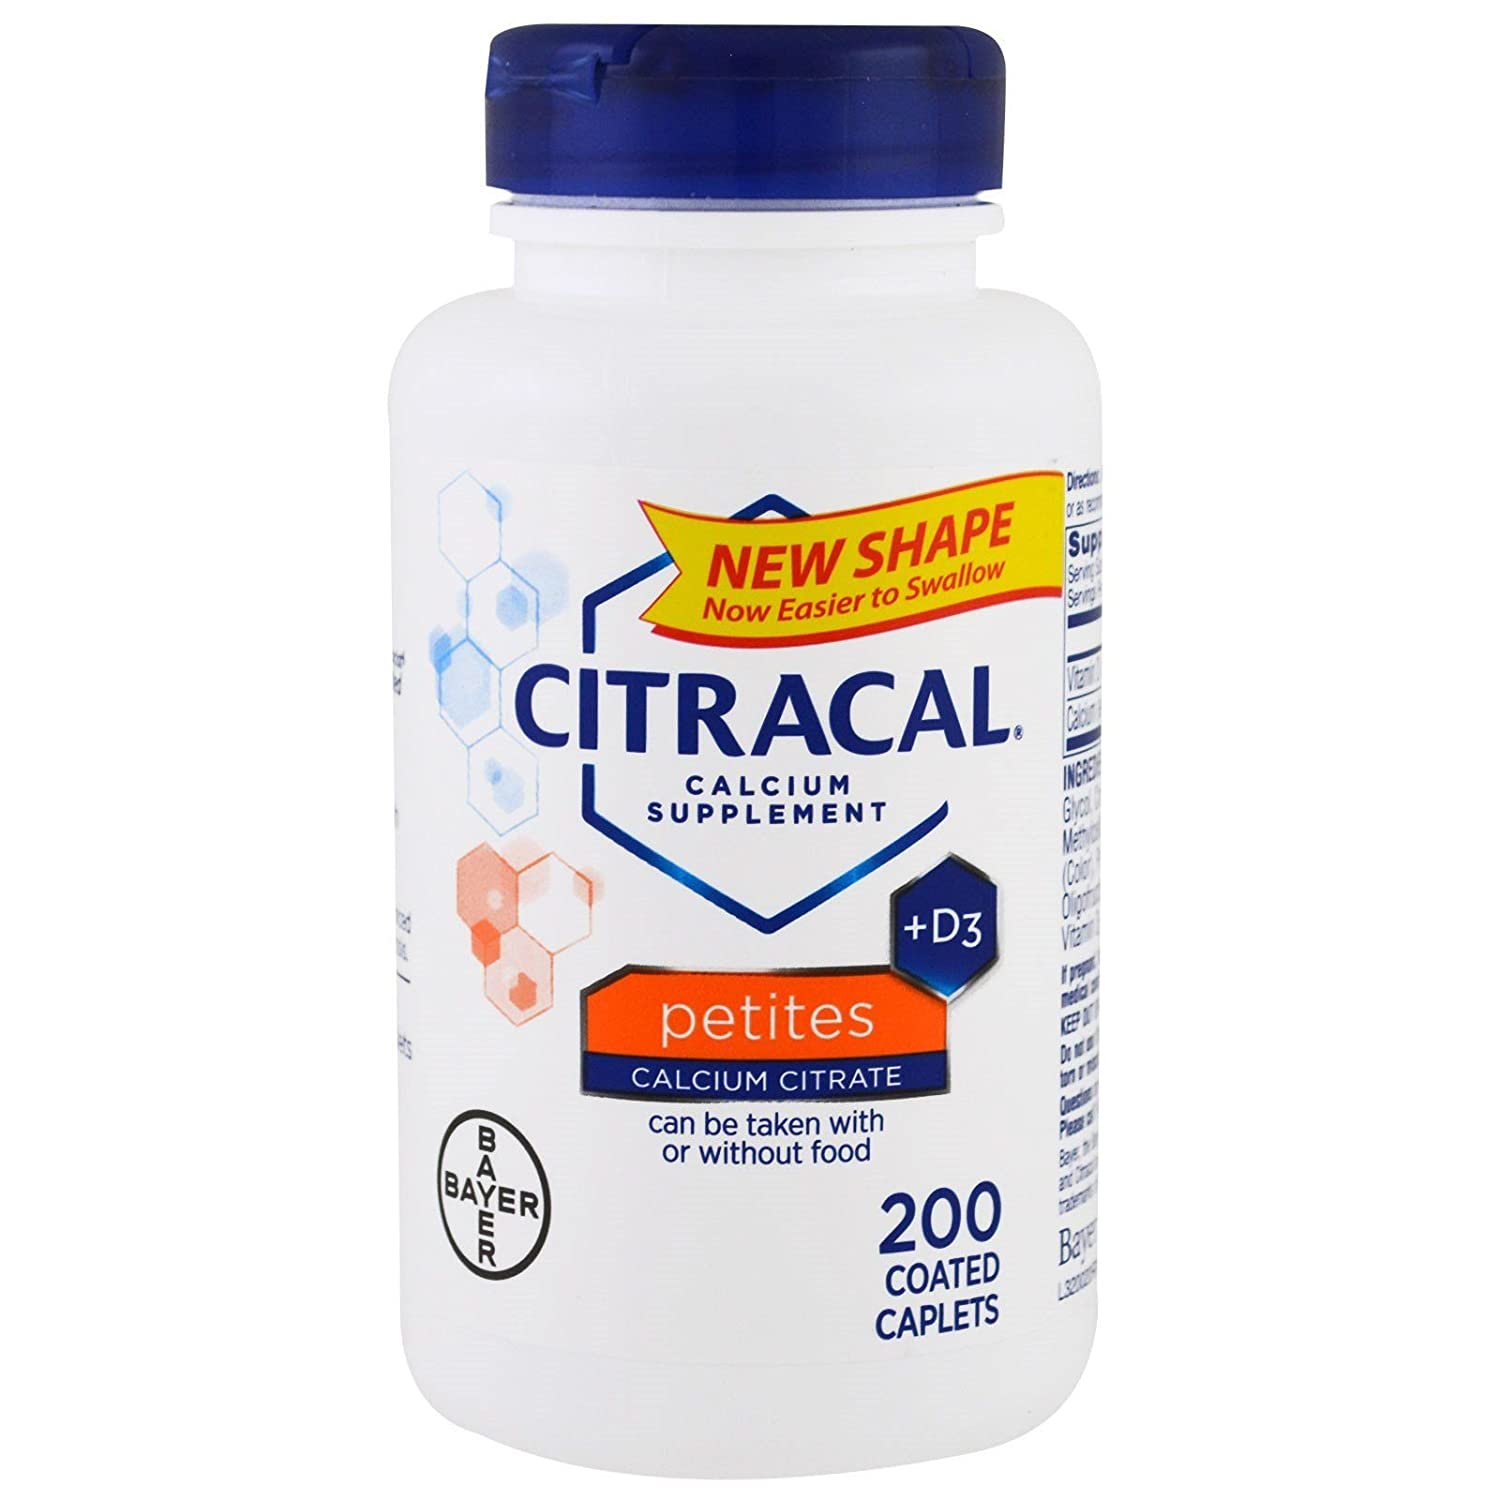 Citracal Calcium Citrate + D3 Petites Tablets - 200 ct, Pack of 4